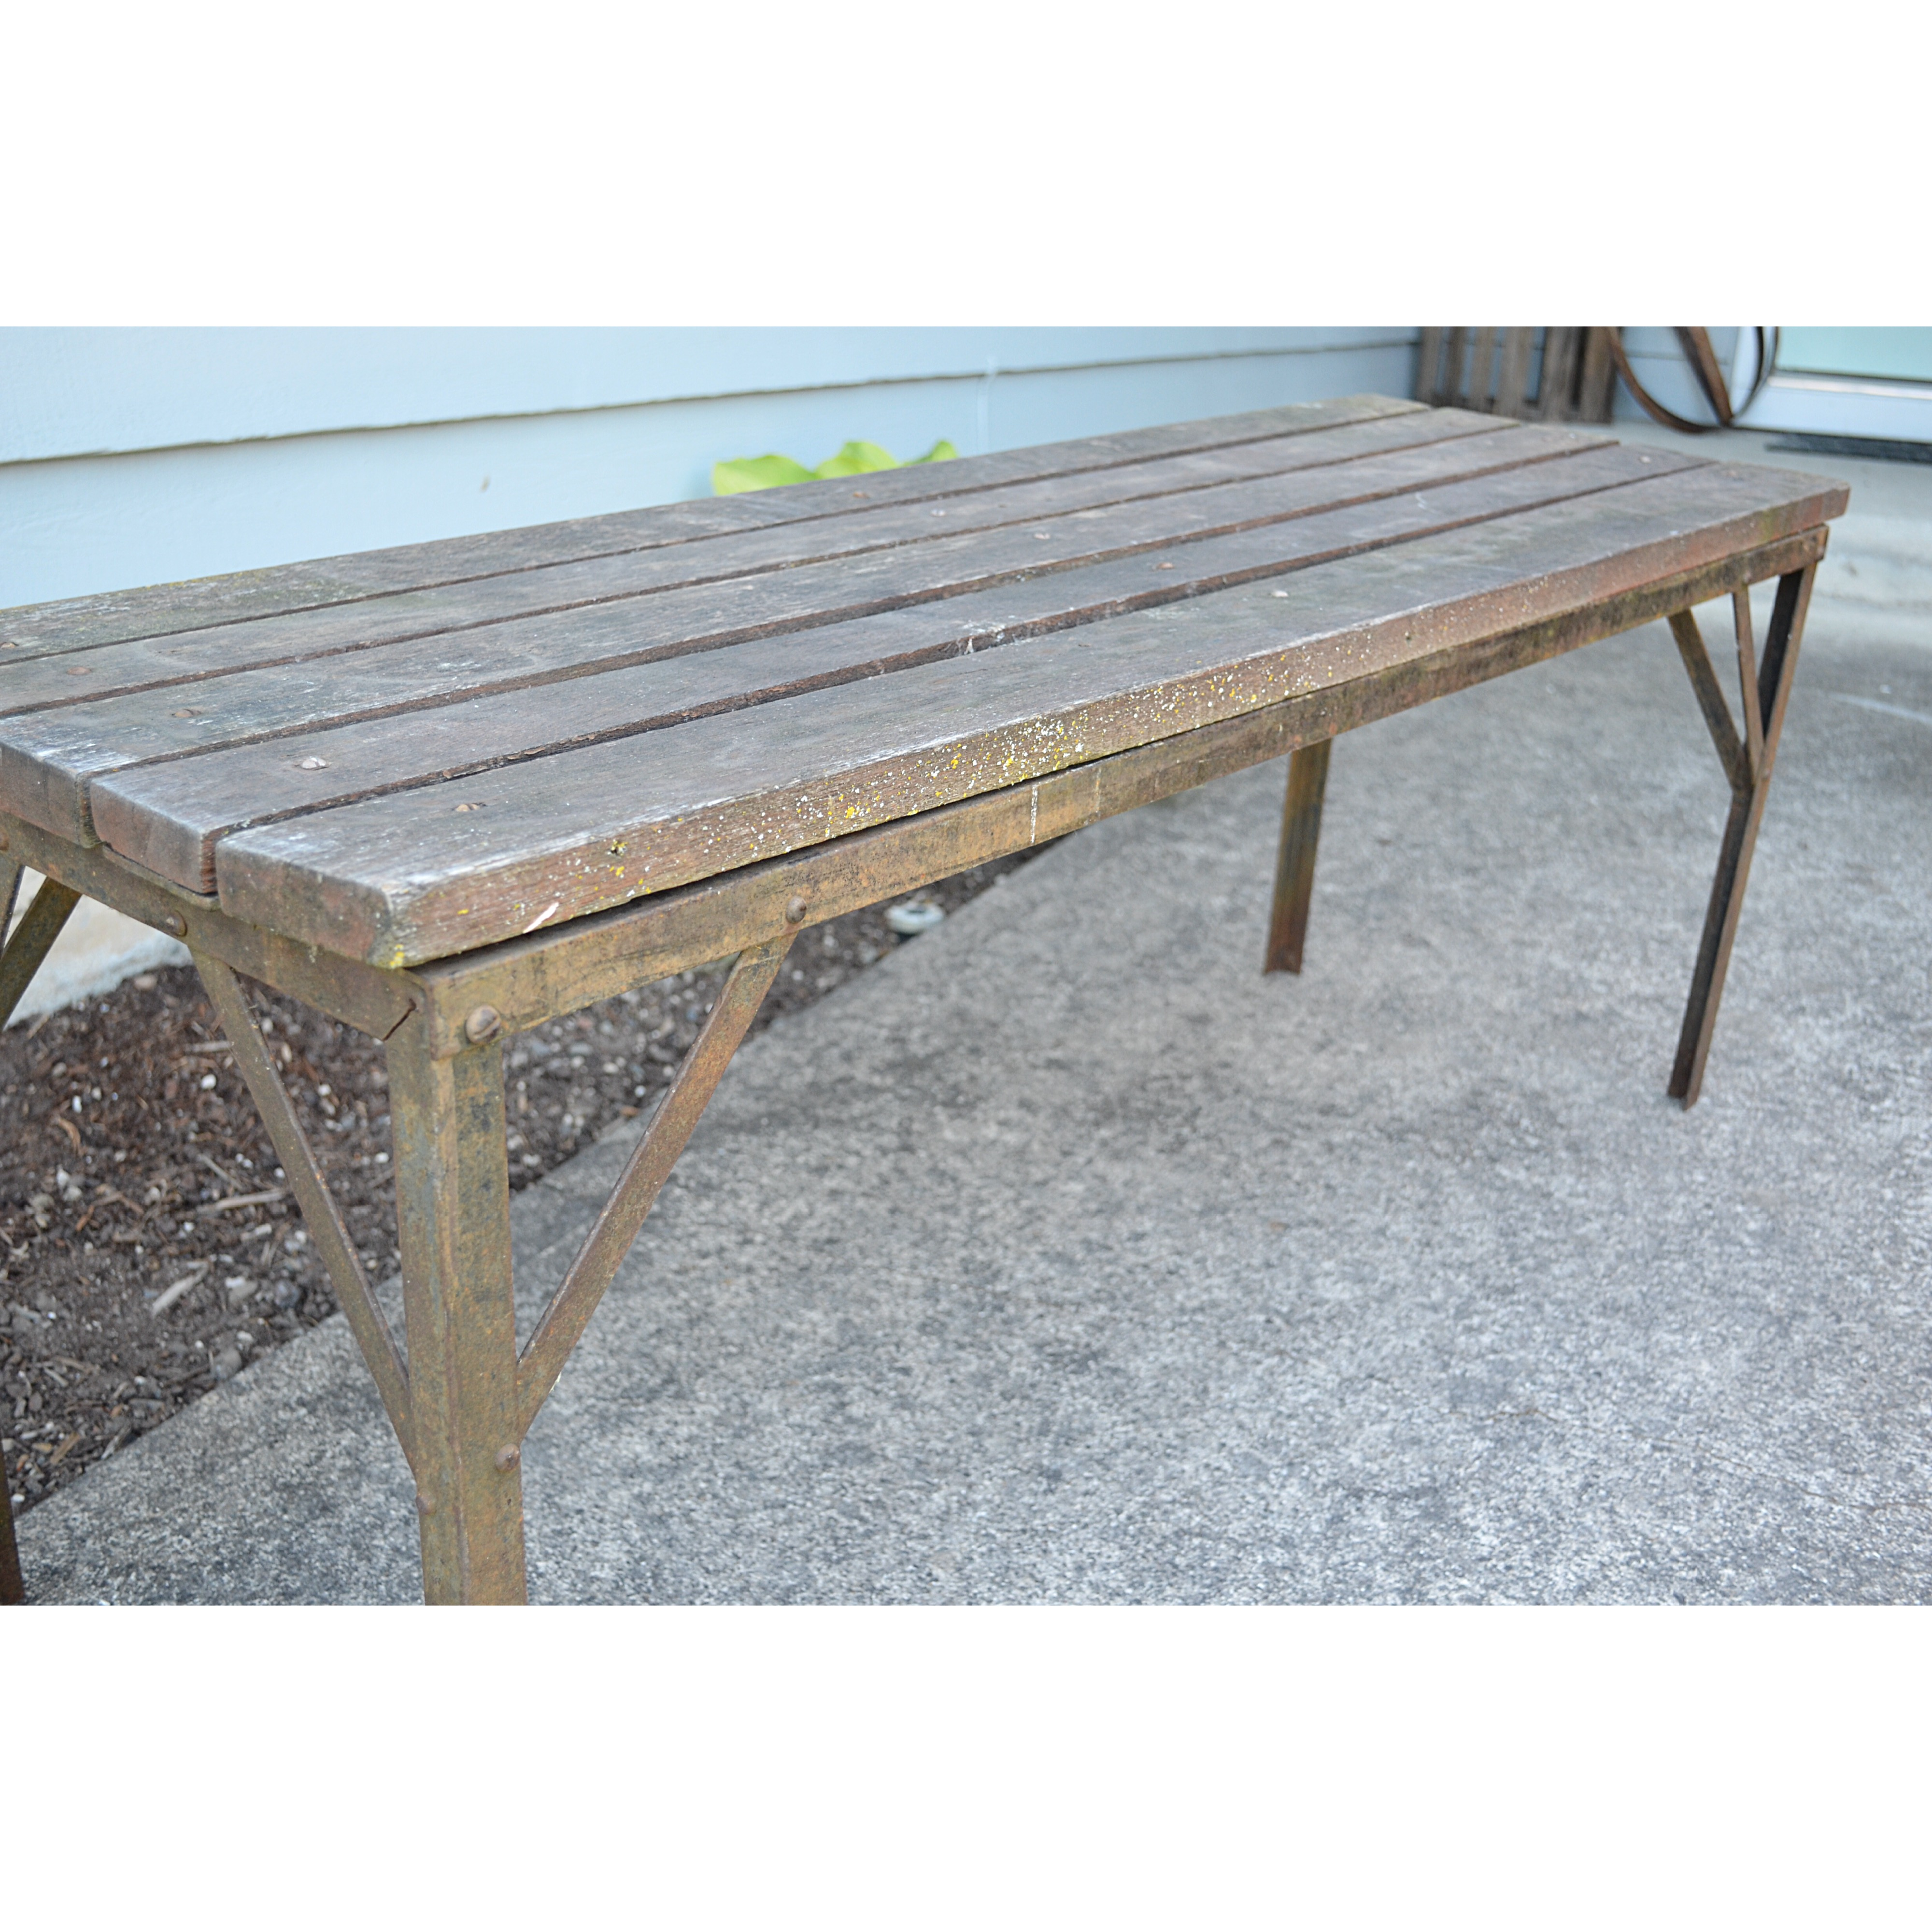 options classic seating north rentals rsz farm products england true event bench new